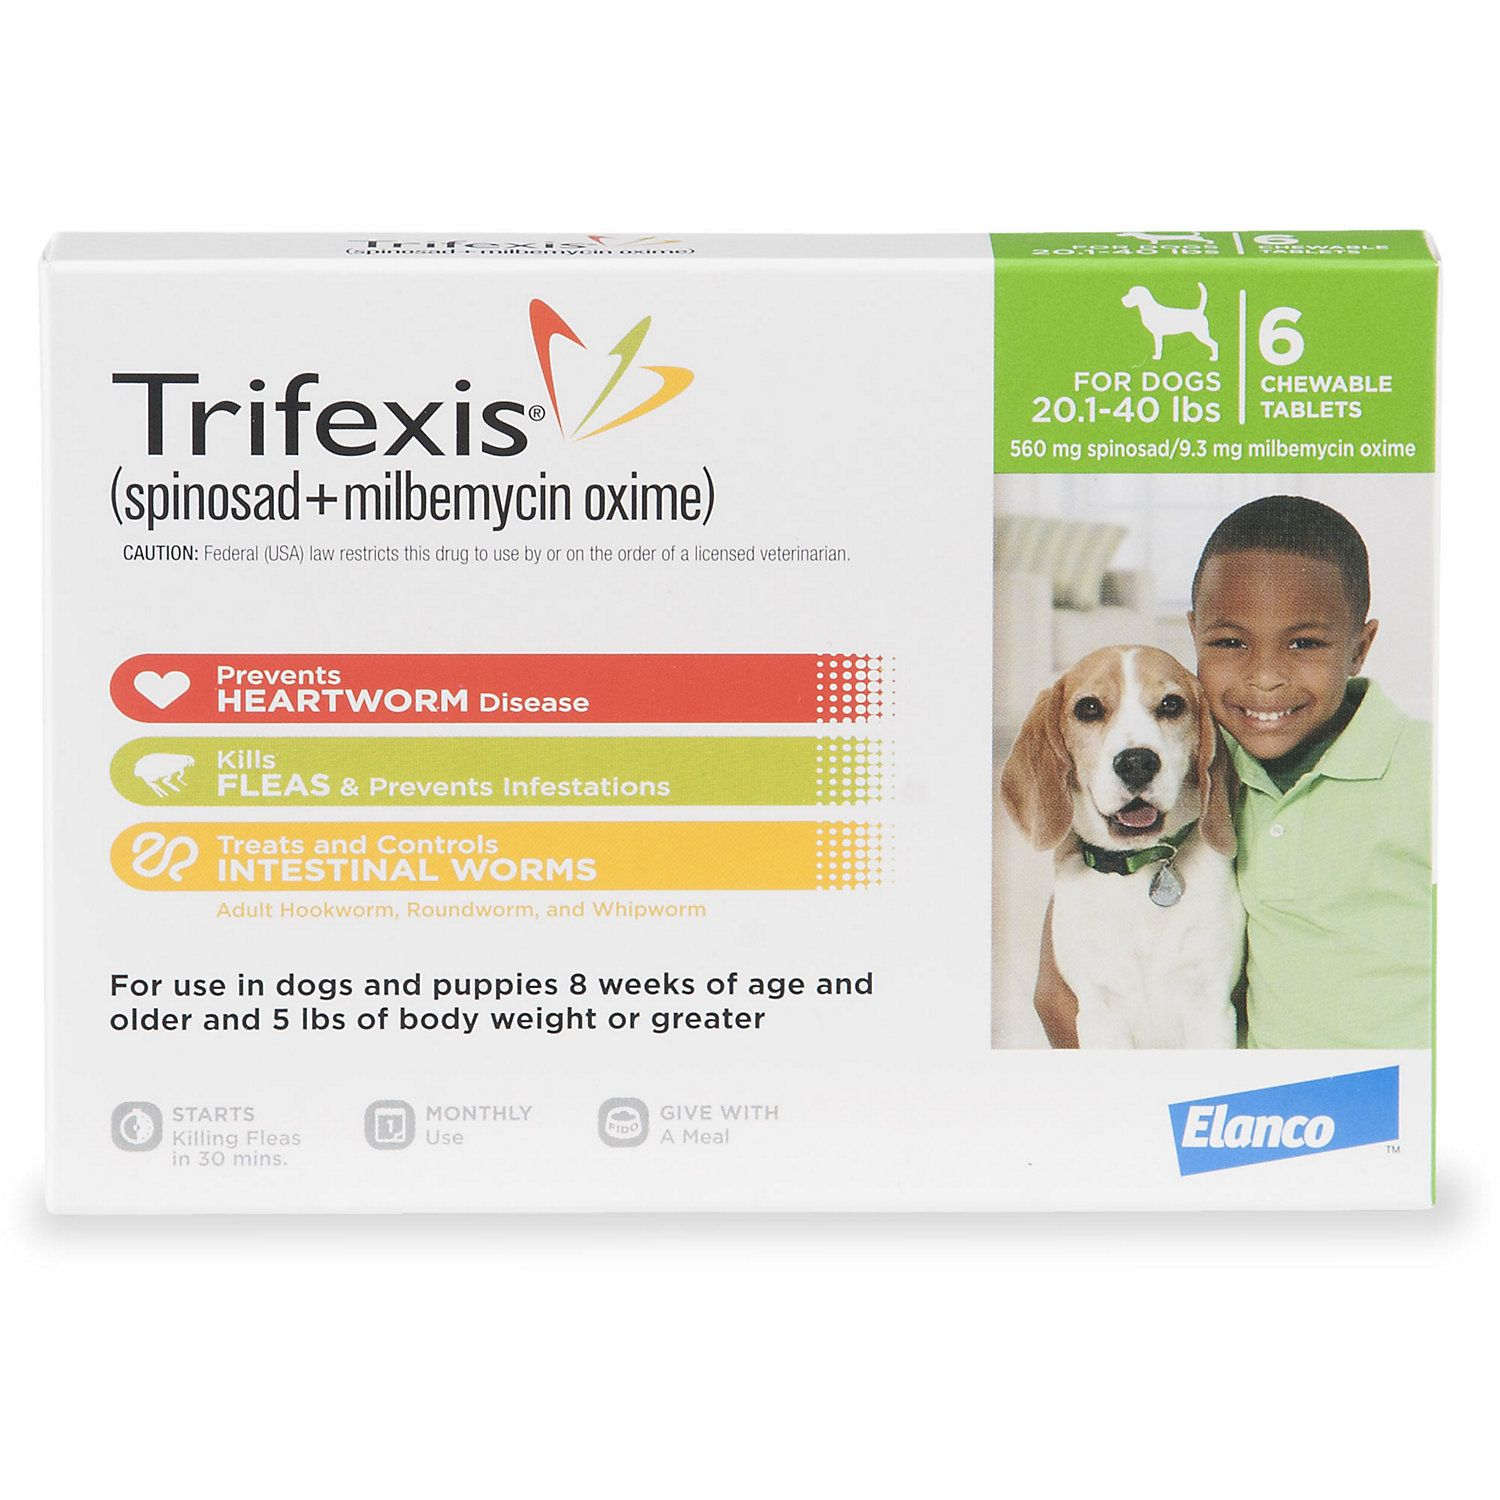 Trifexis Chewable Tablets For Dogs 20 1 To 40 Lbs 6 Pack Petco Heartworm Heartworm Prevention Heartworm Disease